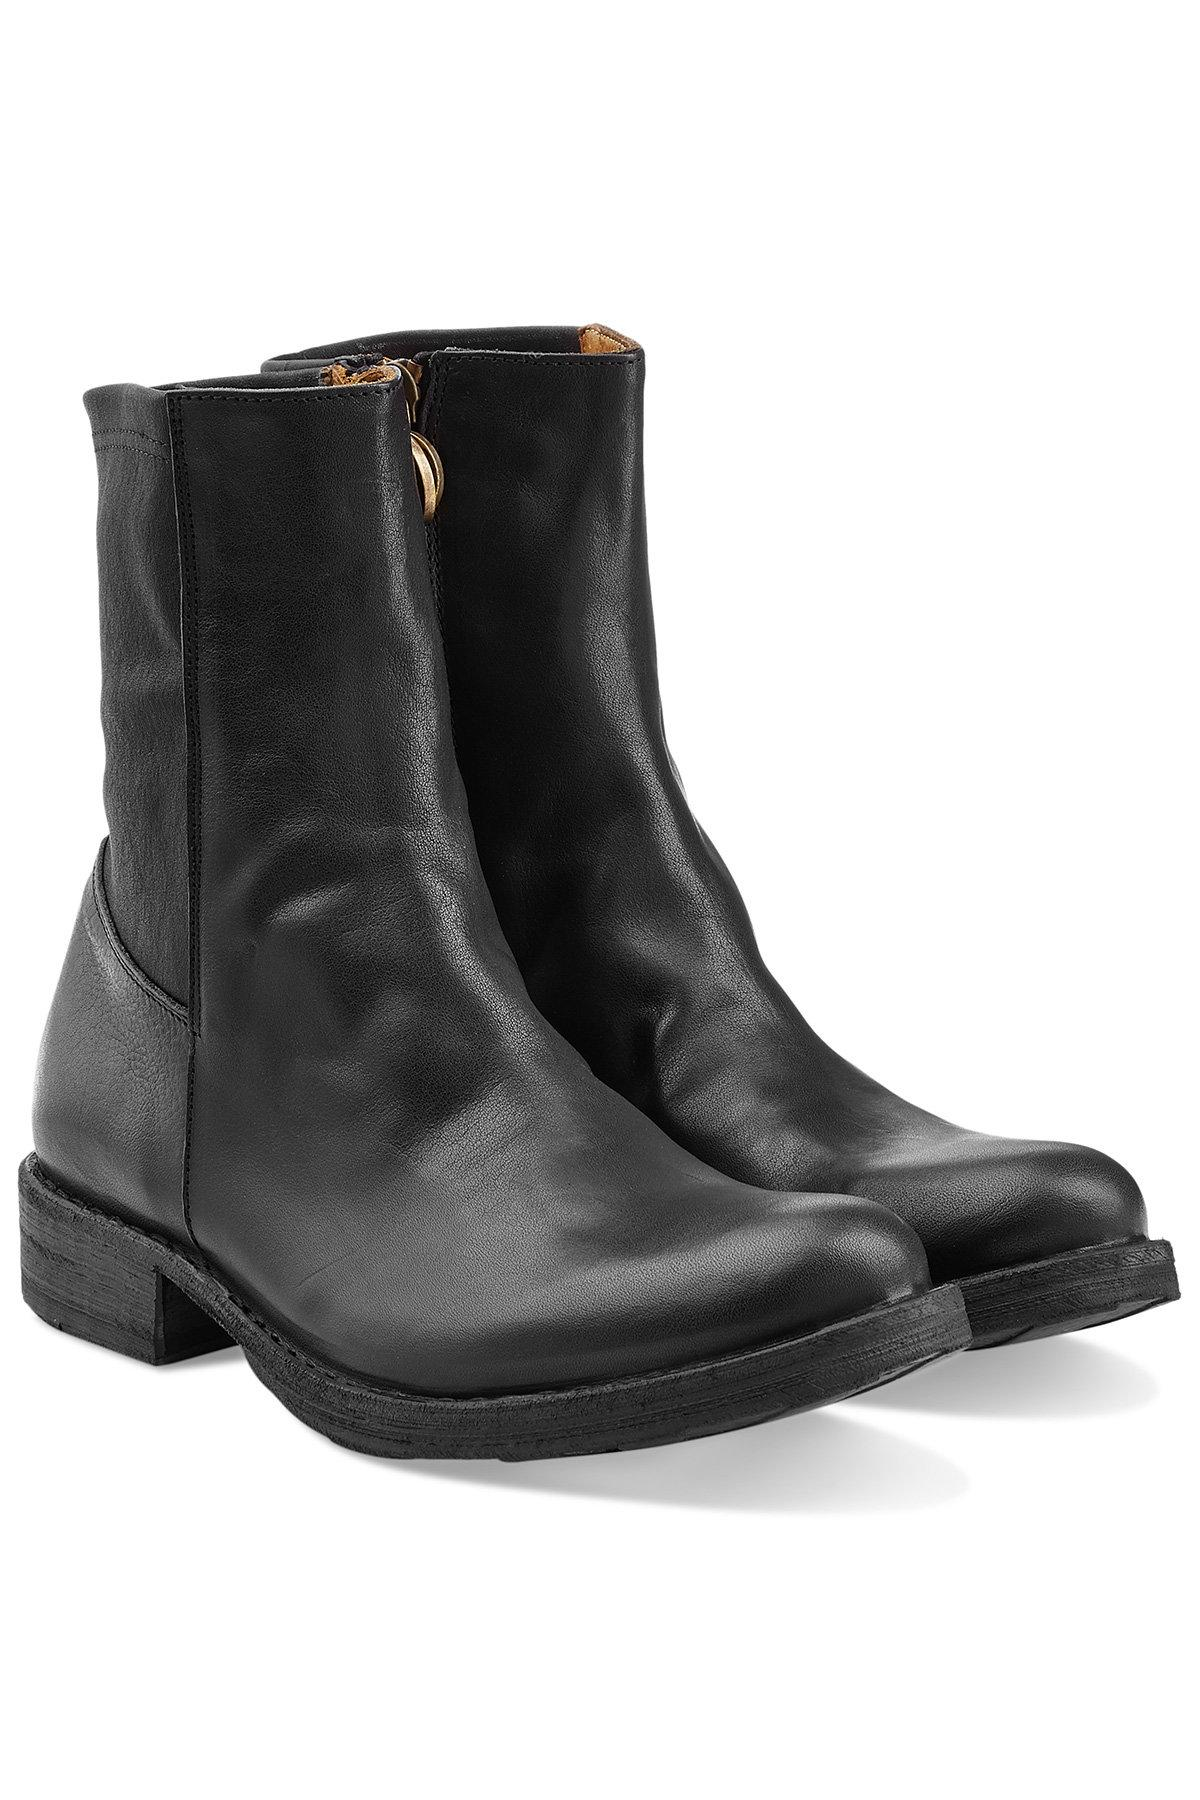 Fiorentini + Baker Ebe Leather Ankle Boots In Black